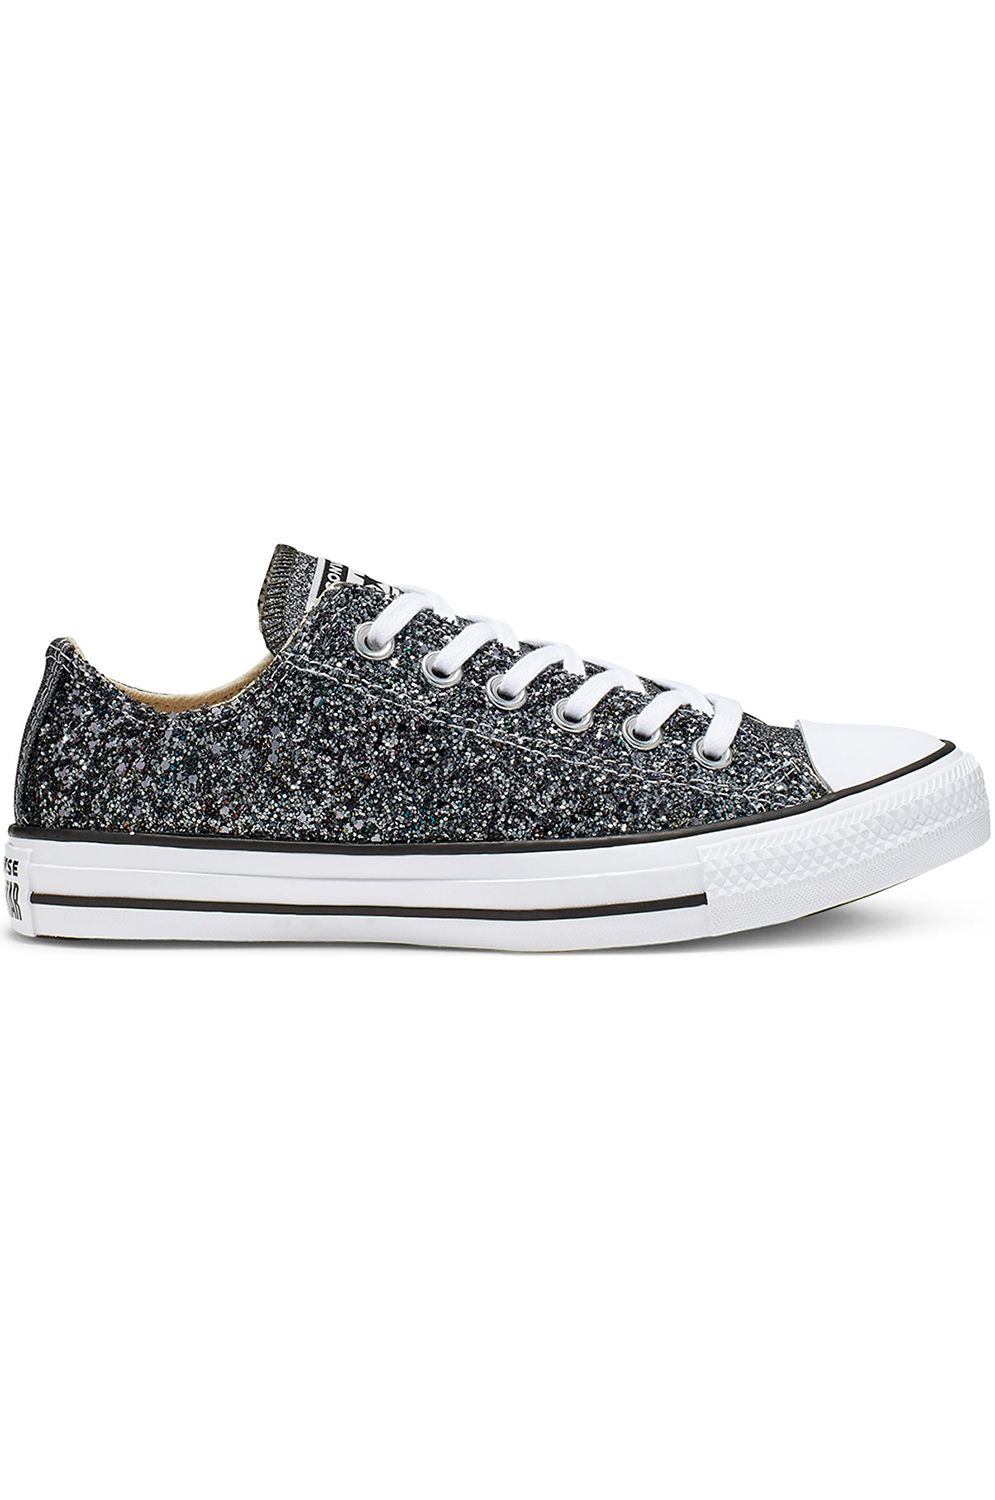 Converse Shoes CHUCK TAYLOR ALL STAR OX Silver/Black/White